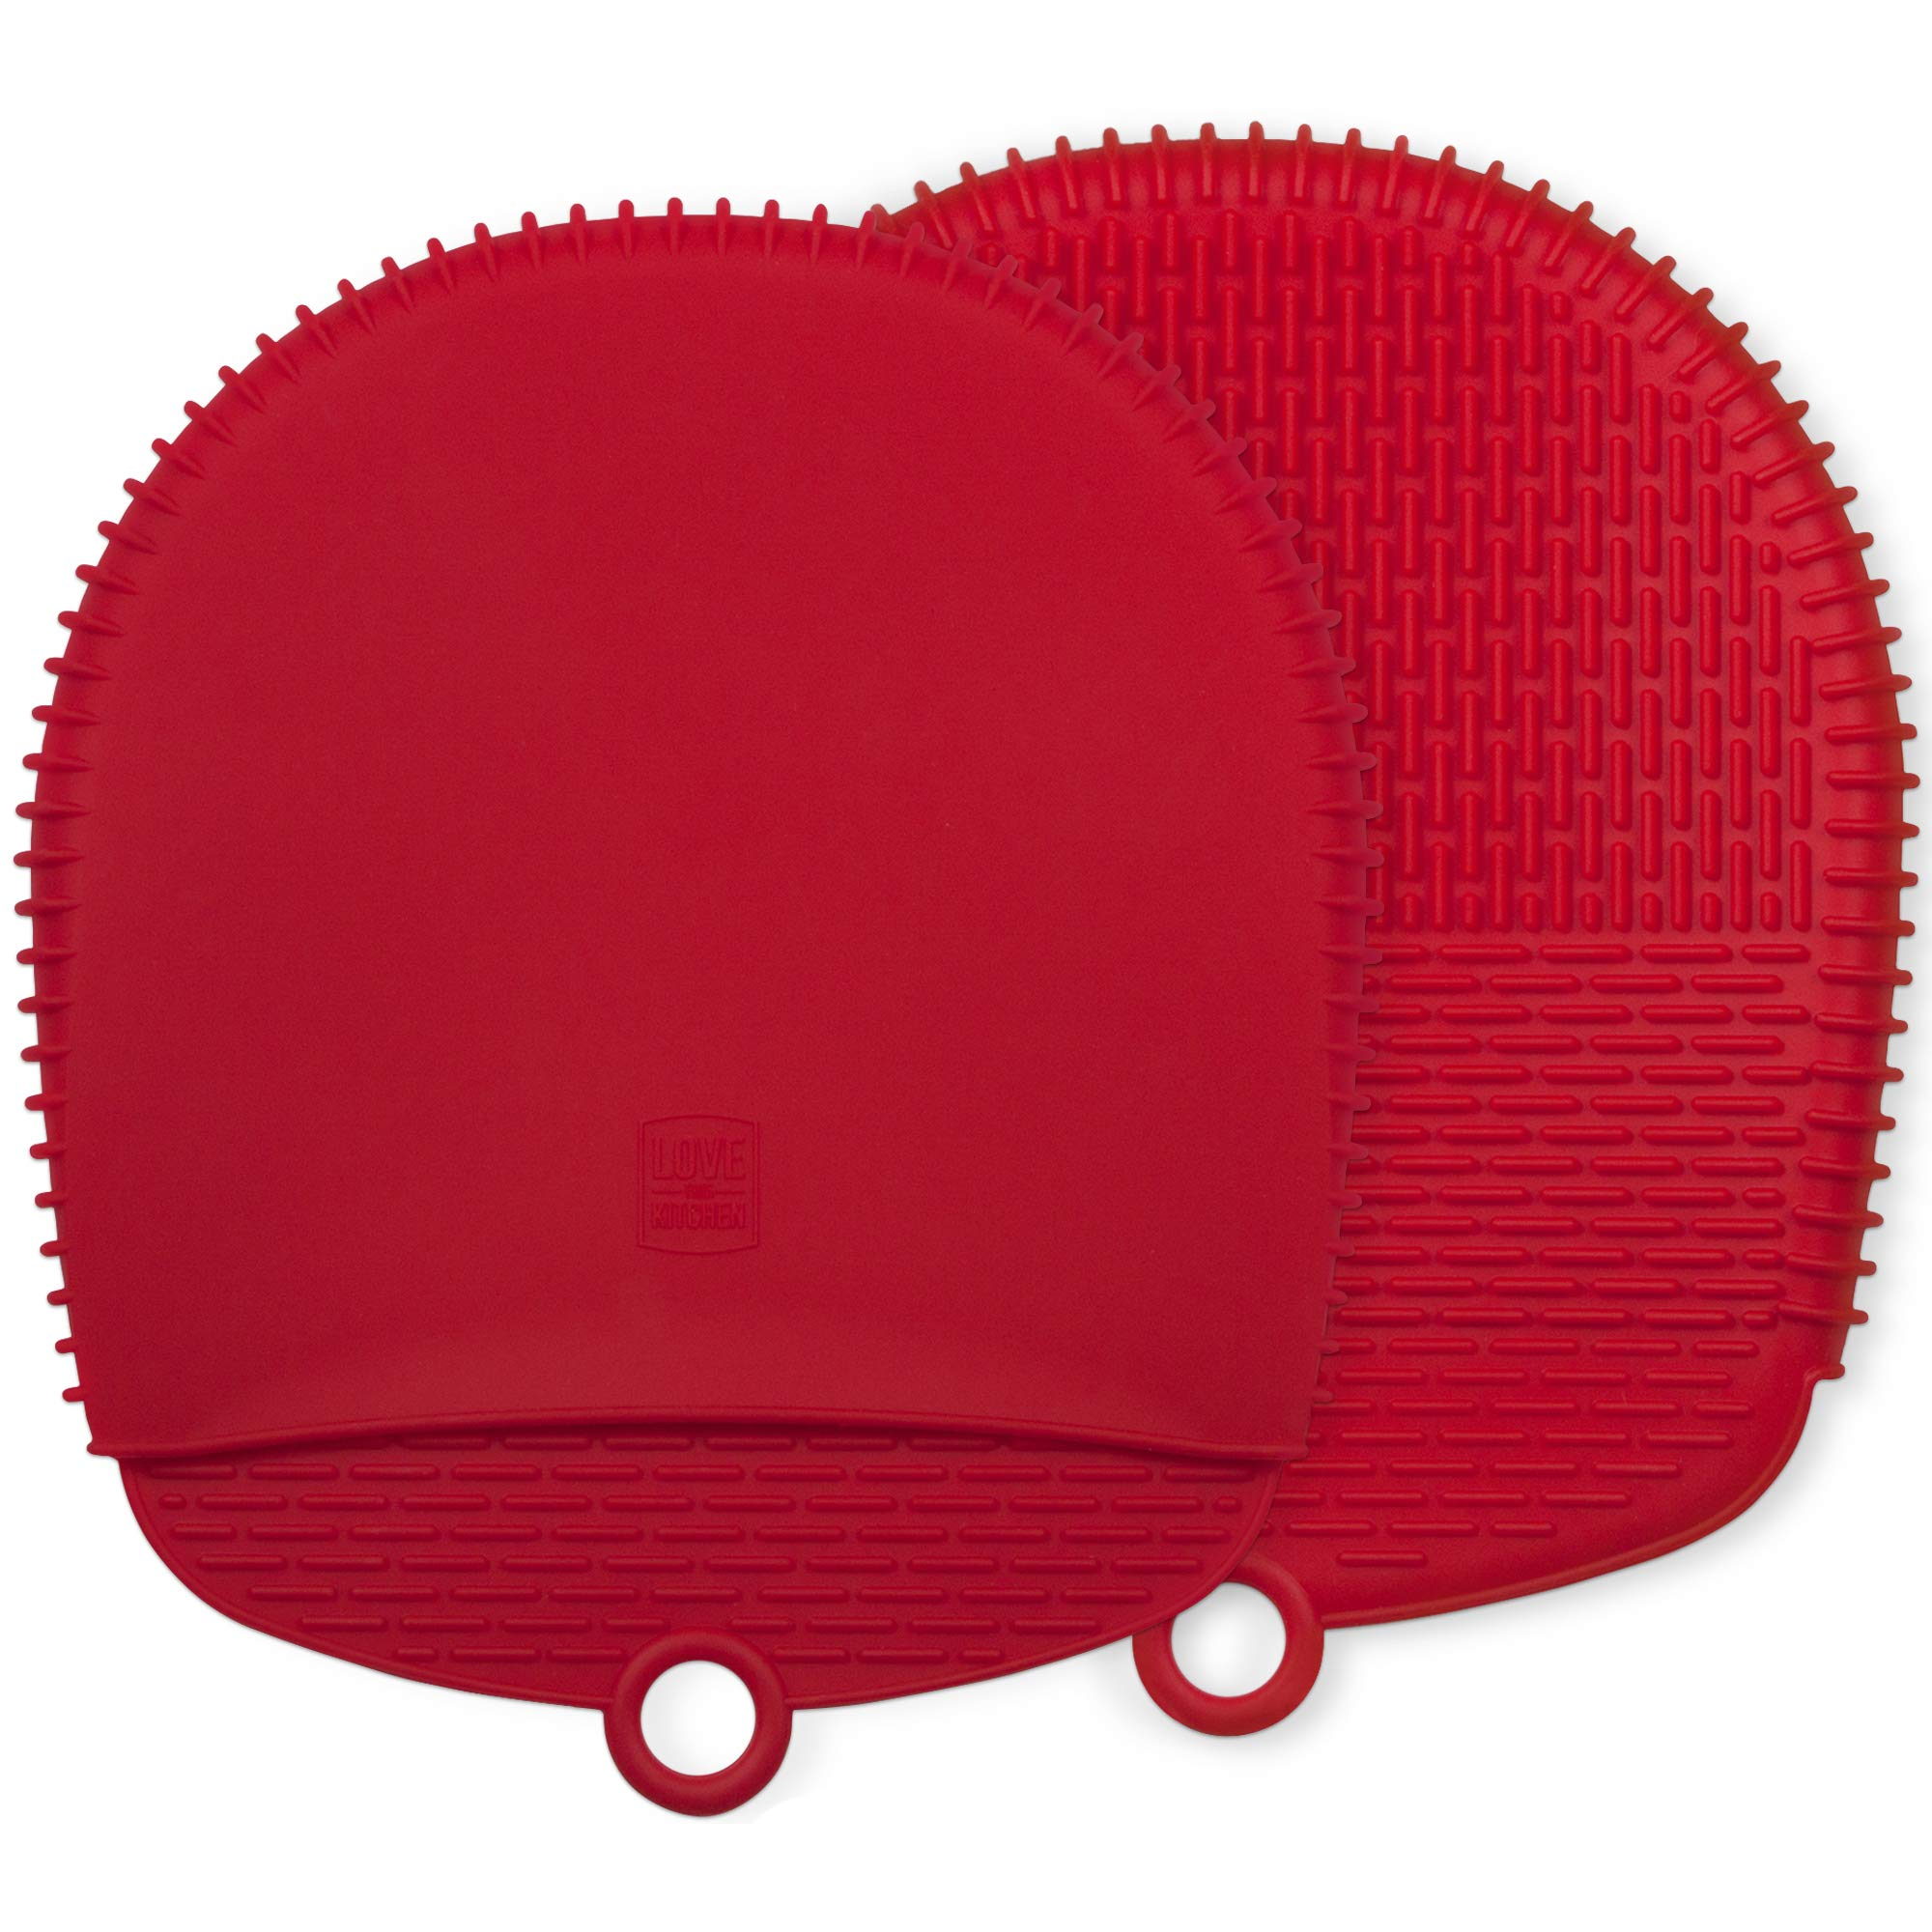 The Ultimate Pot Holders / Oven Mitts | 100% Silicone Mitt is Healthier Than Cotton & Easier to Clean, Won't Grow Mold or Bacteria | Unique Design Makes it Safe, Non-Slip, Flexible (Coral Red, 1 Pair)